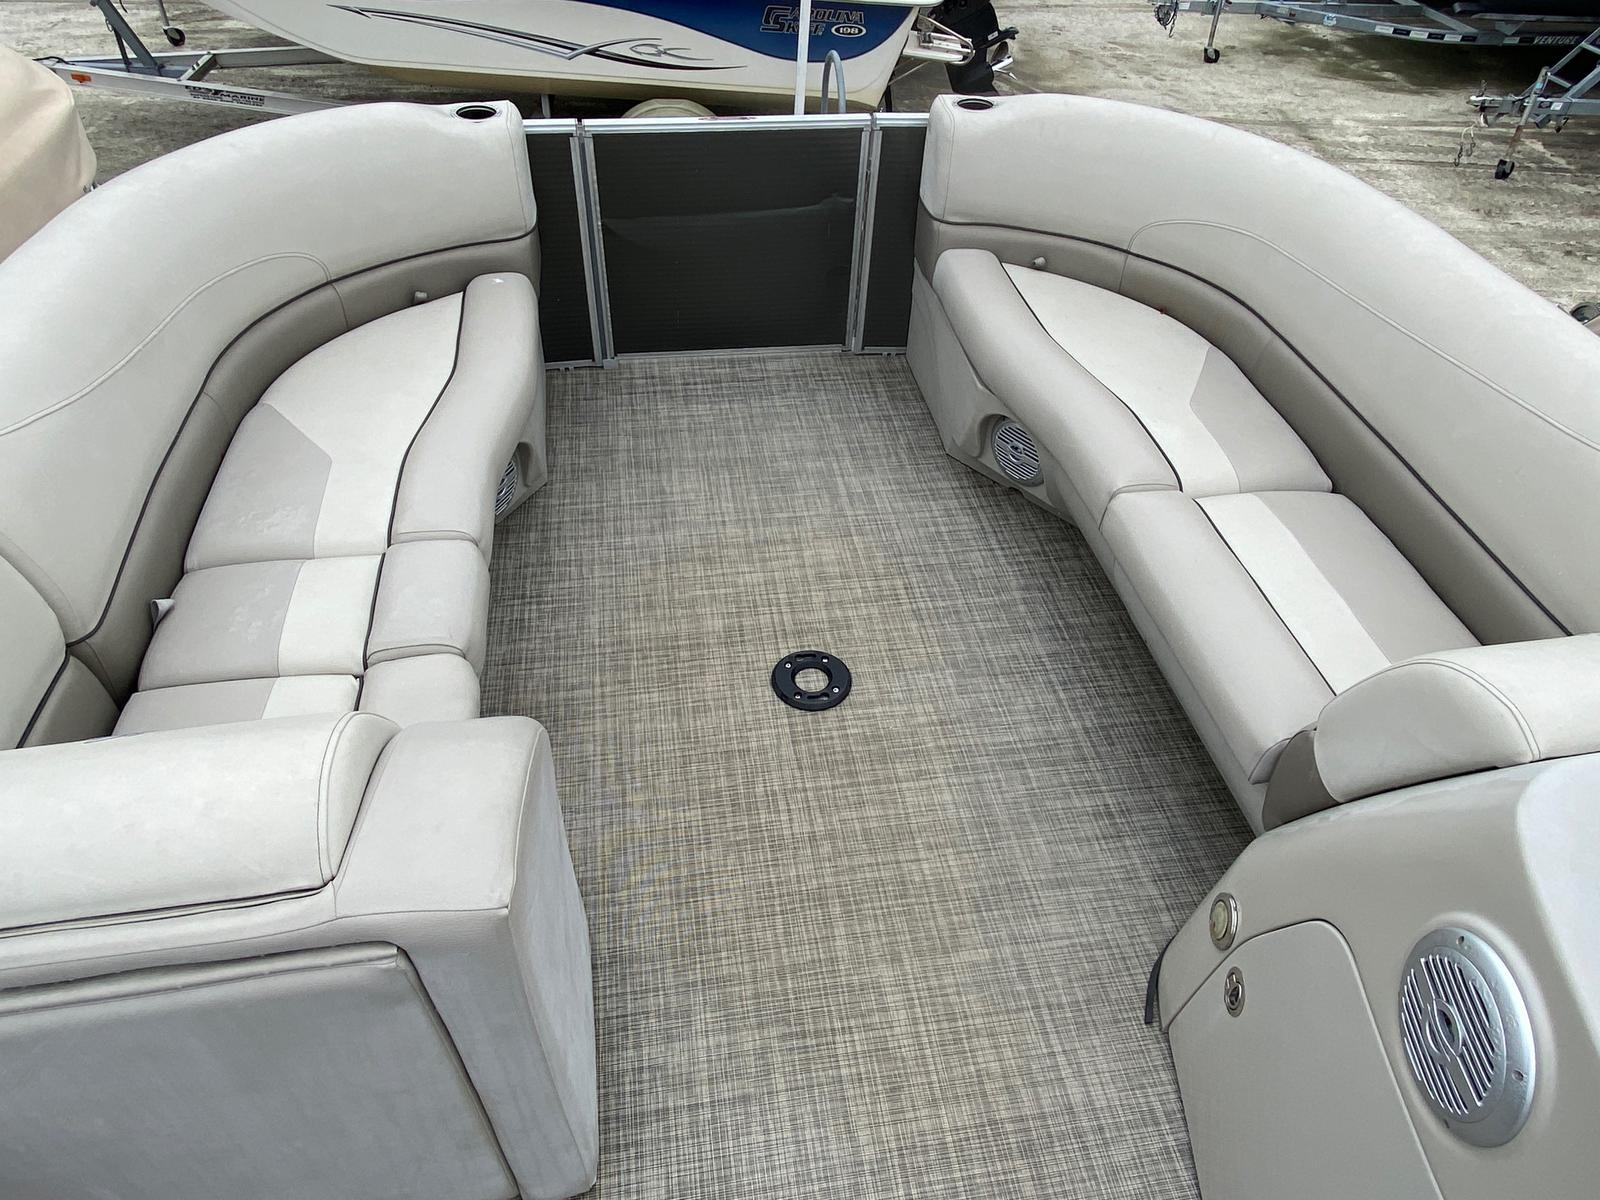 2017 Cypress Cay boat for sale, model of the boat is Seabreeze 232 & Image # 9 of 11